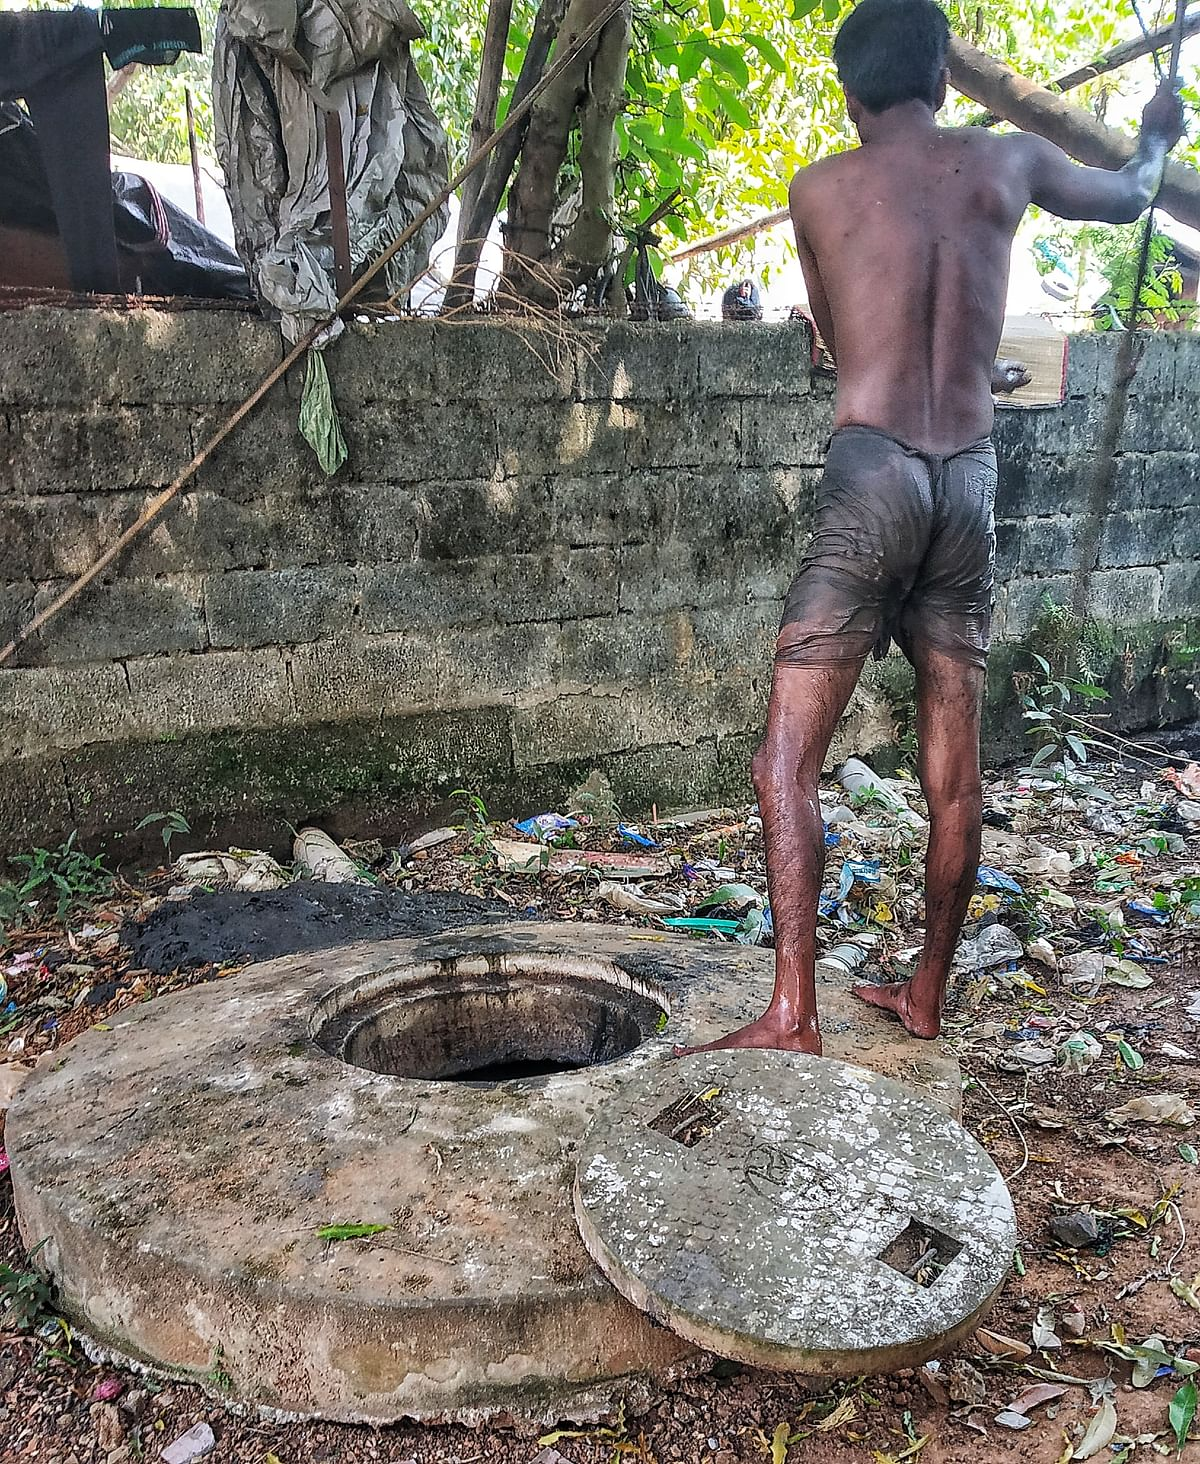 The Government of India has not considered the safety and dignity of these people in the Swachh Bharat Abhiyan.